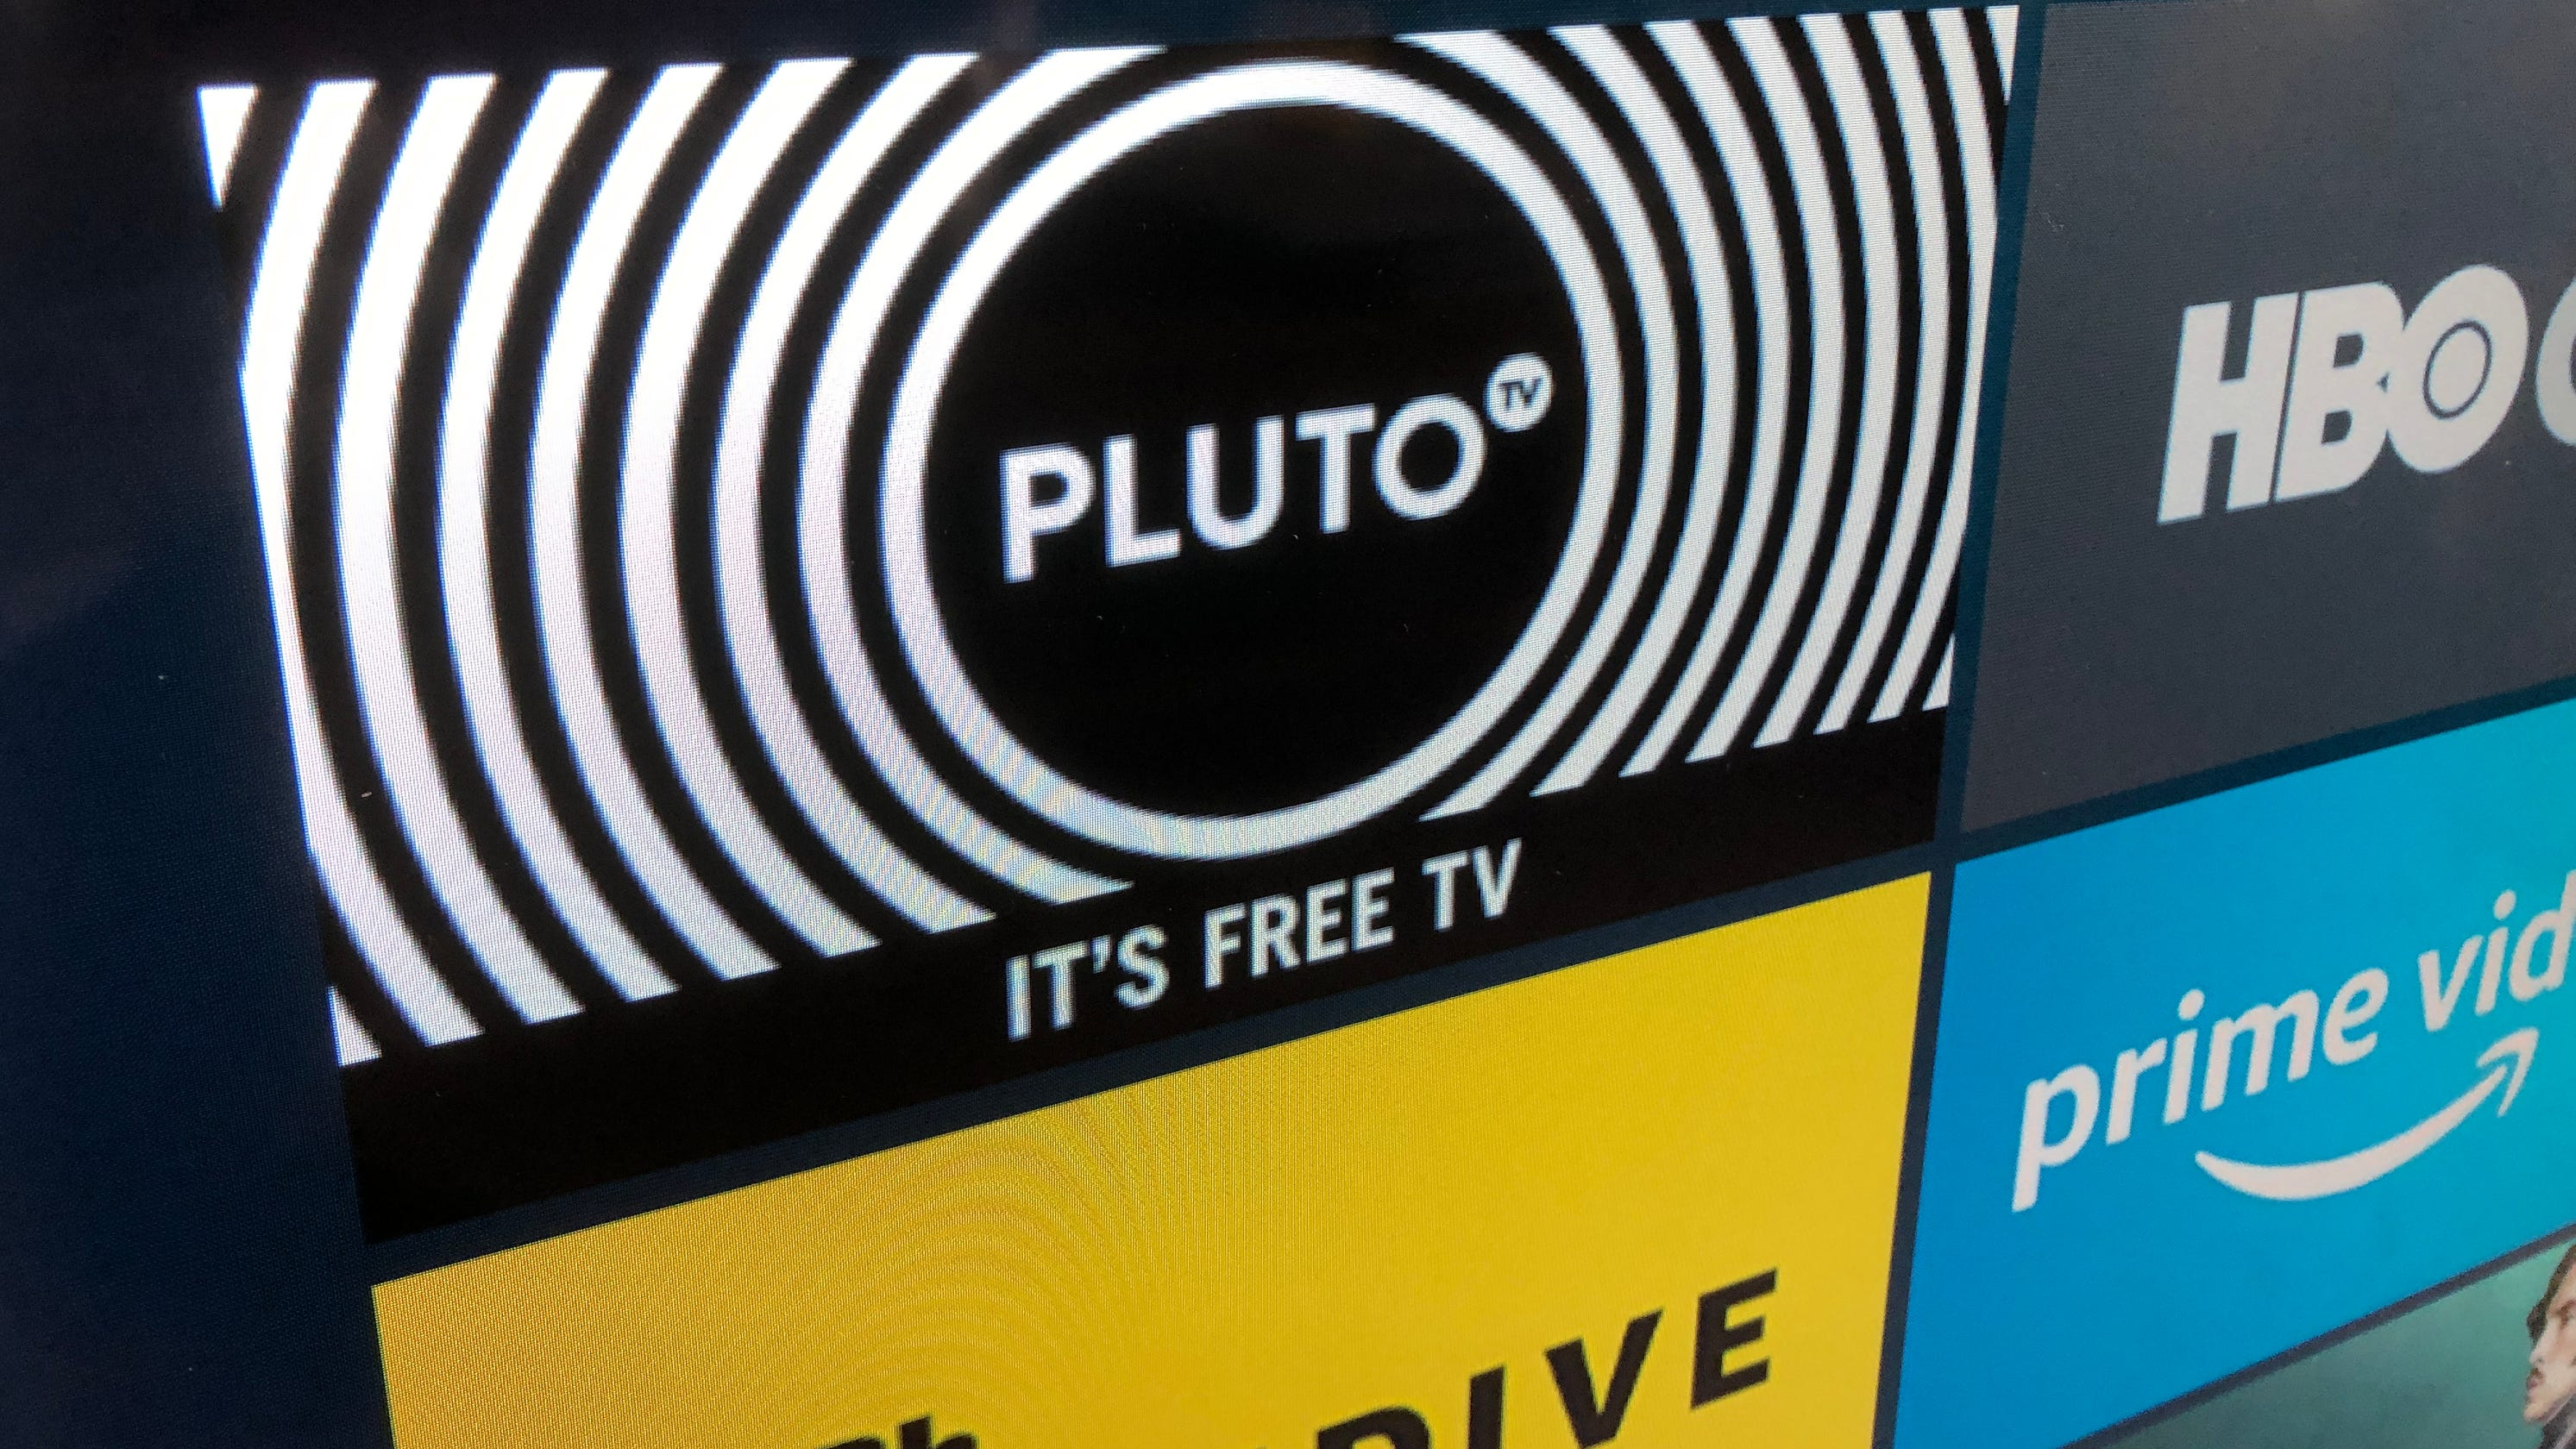 Cutting the cord: What does Viacom buying Pluto TV mean for